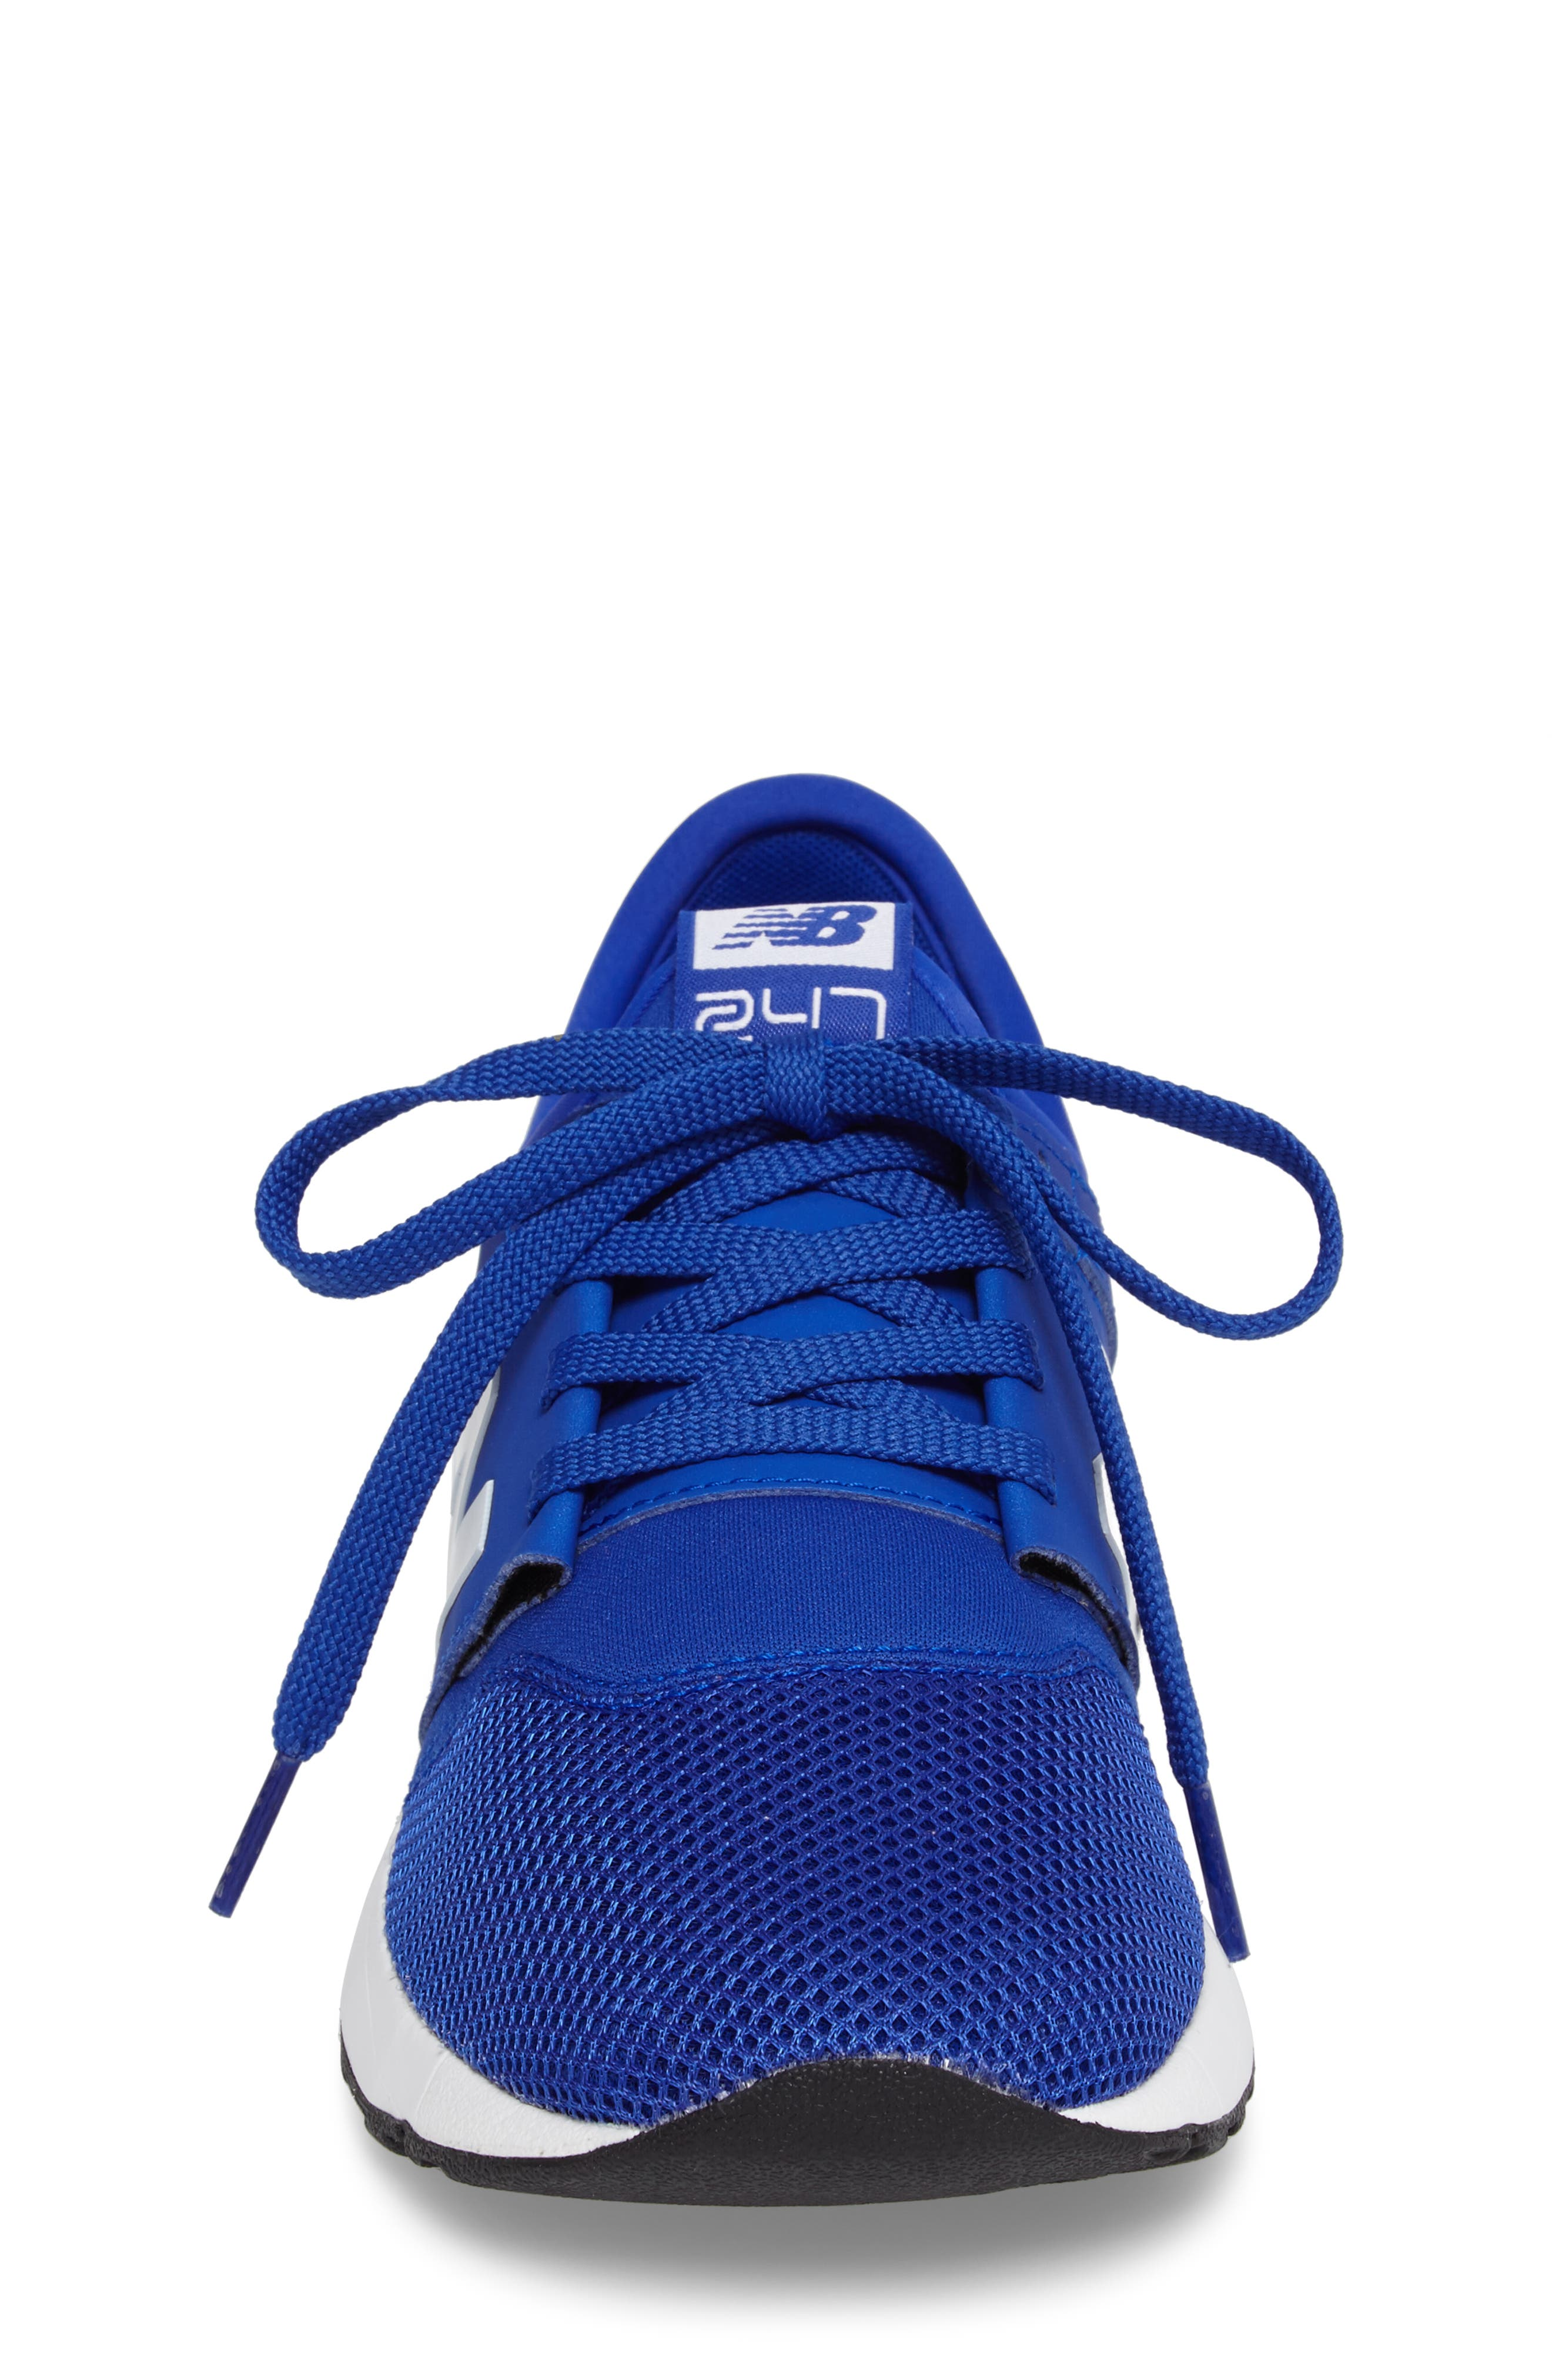 247 Core Sneaker,                             Alternate thumbnail 4, color,                             400